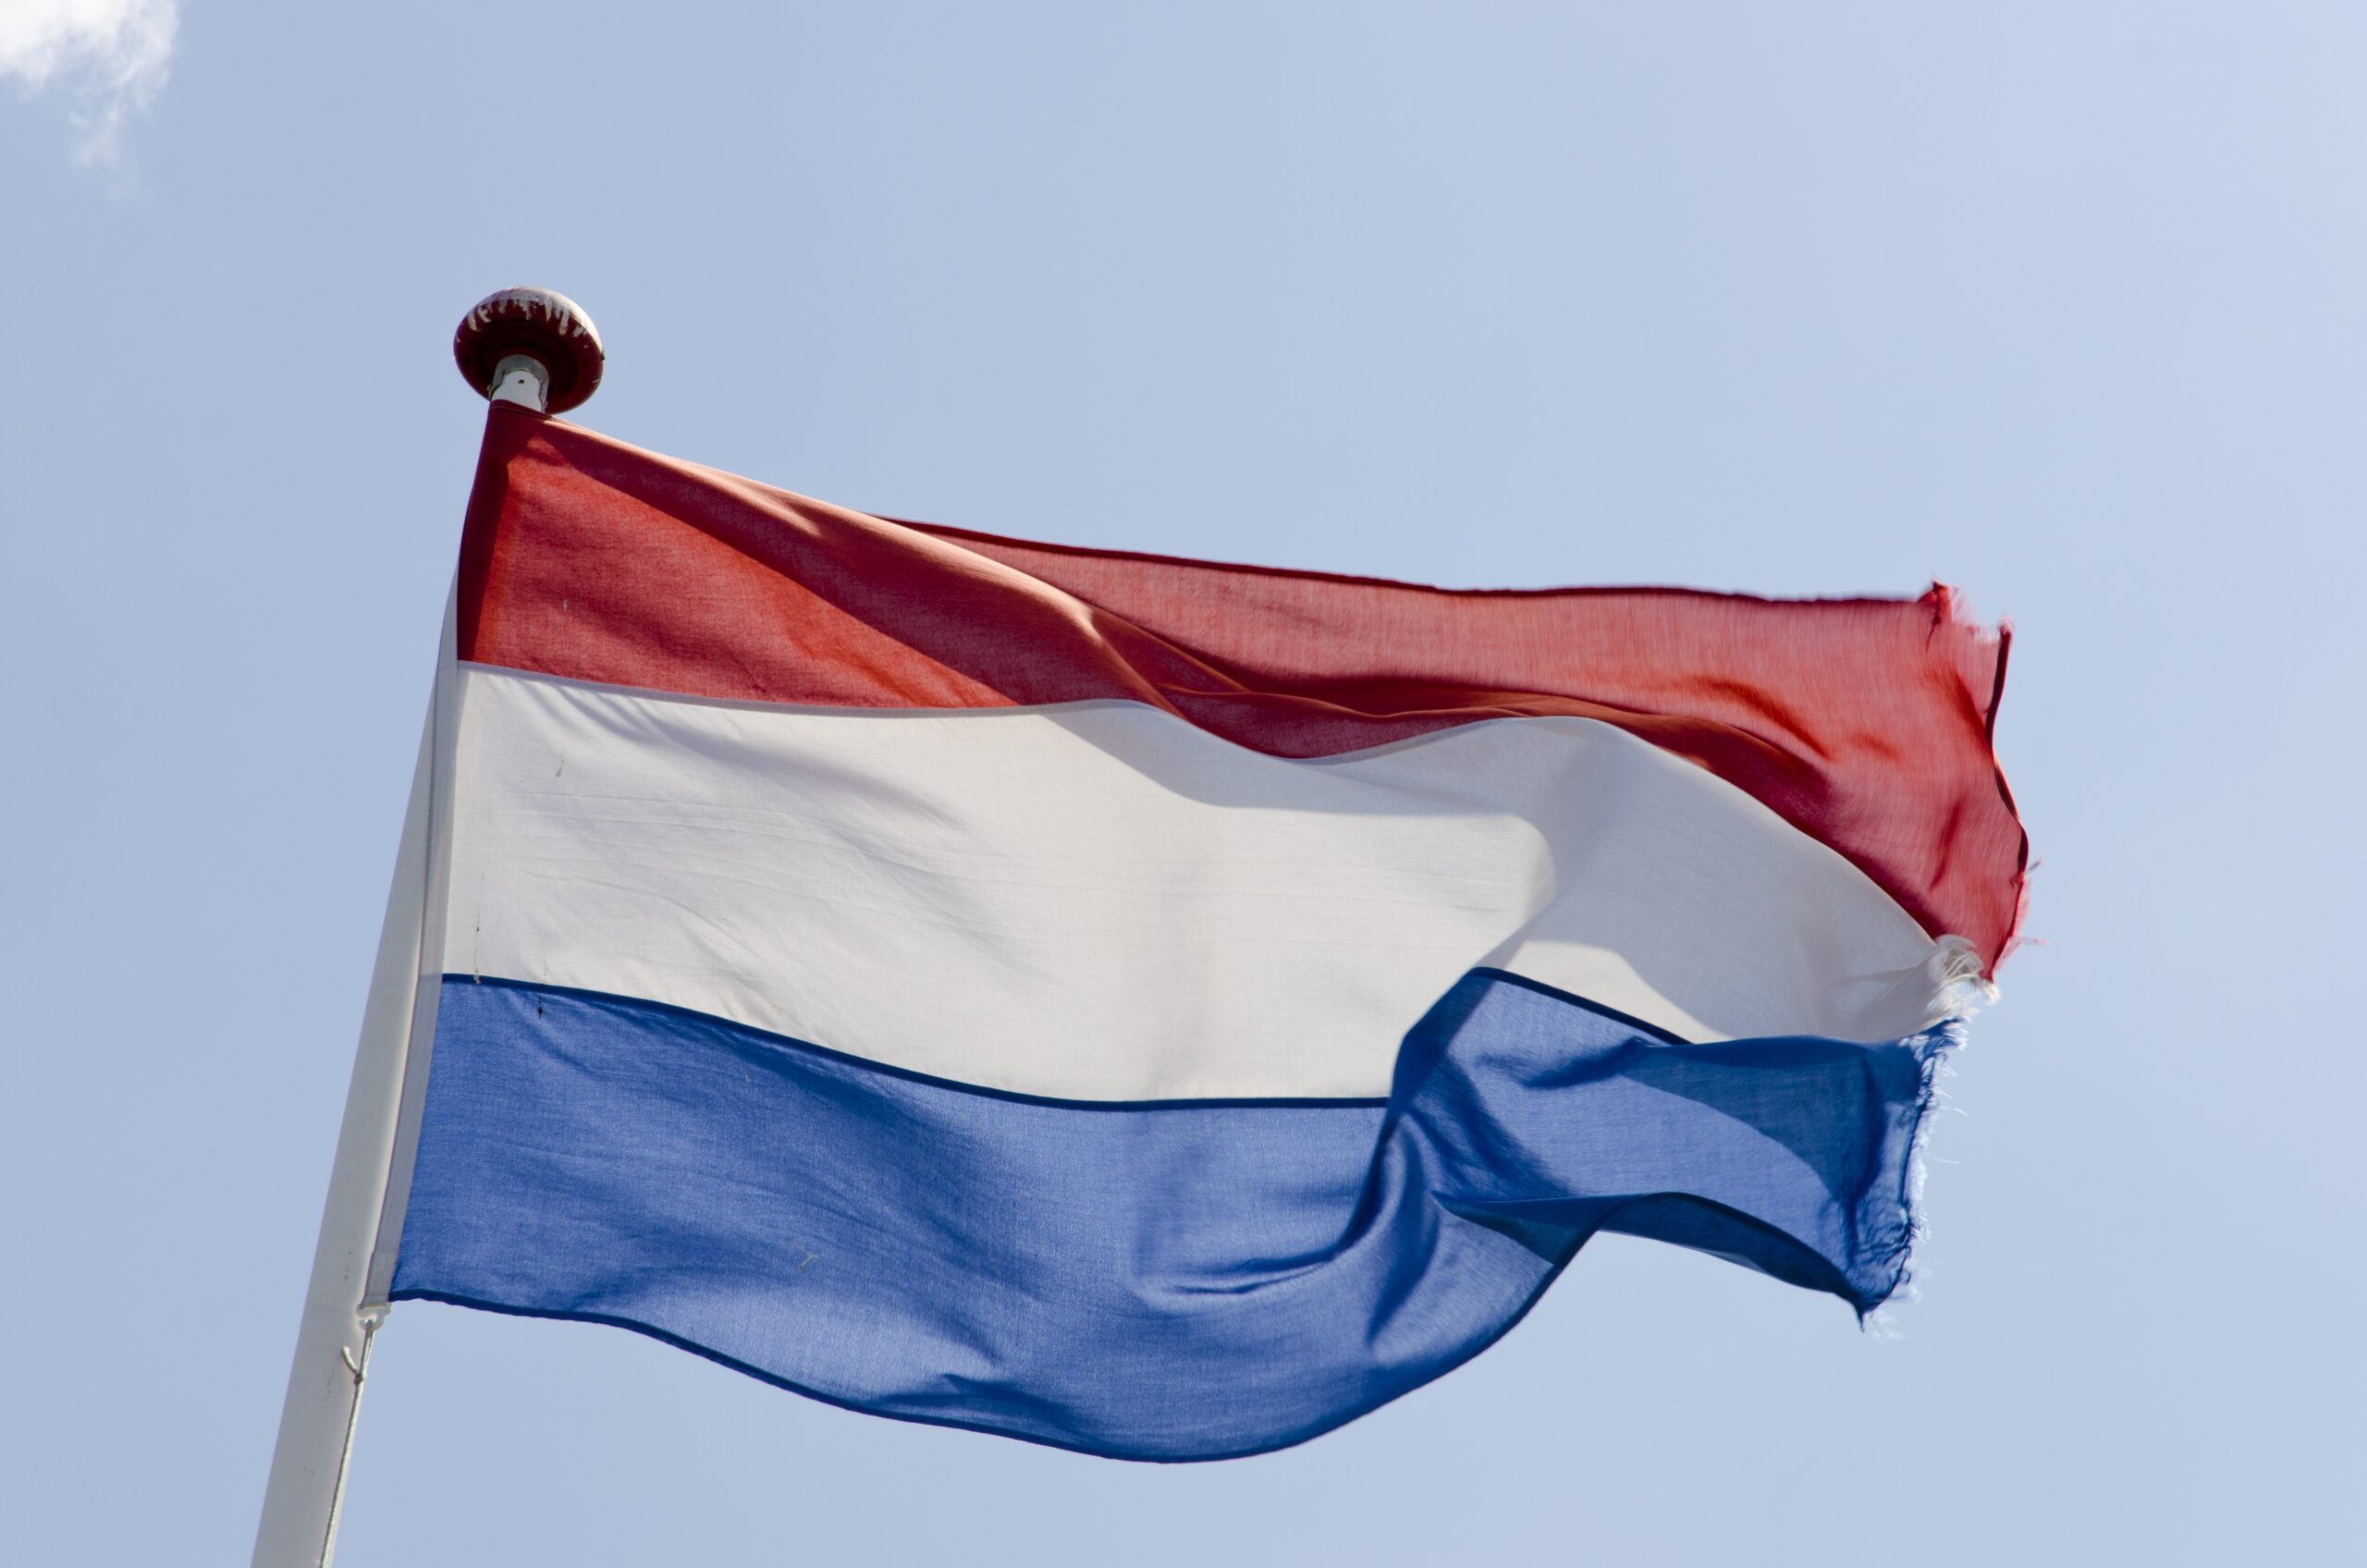 Press release: General elections in The Netherlands